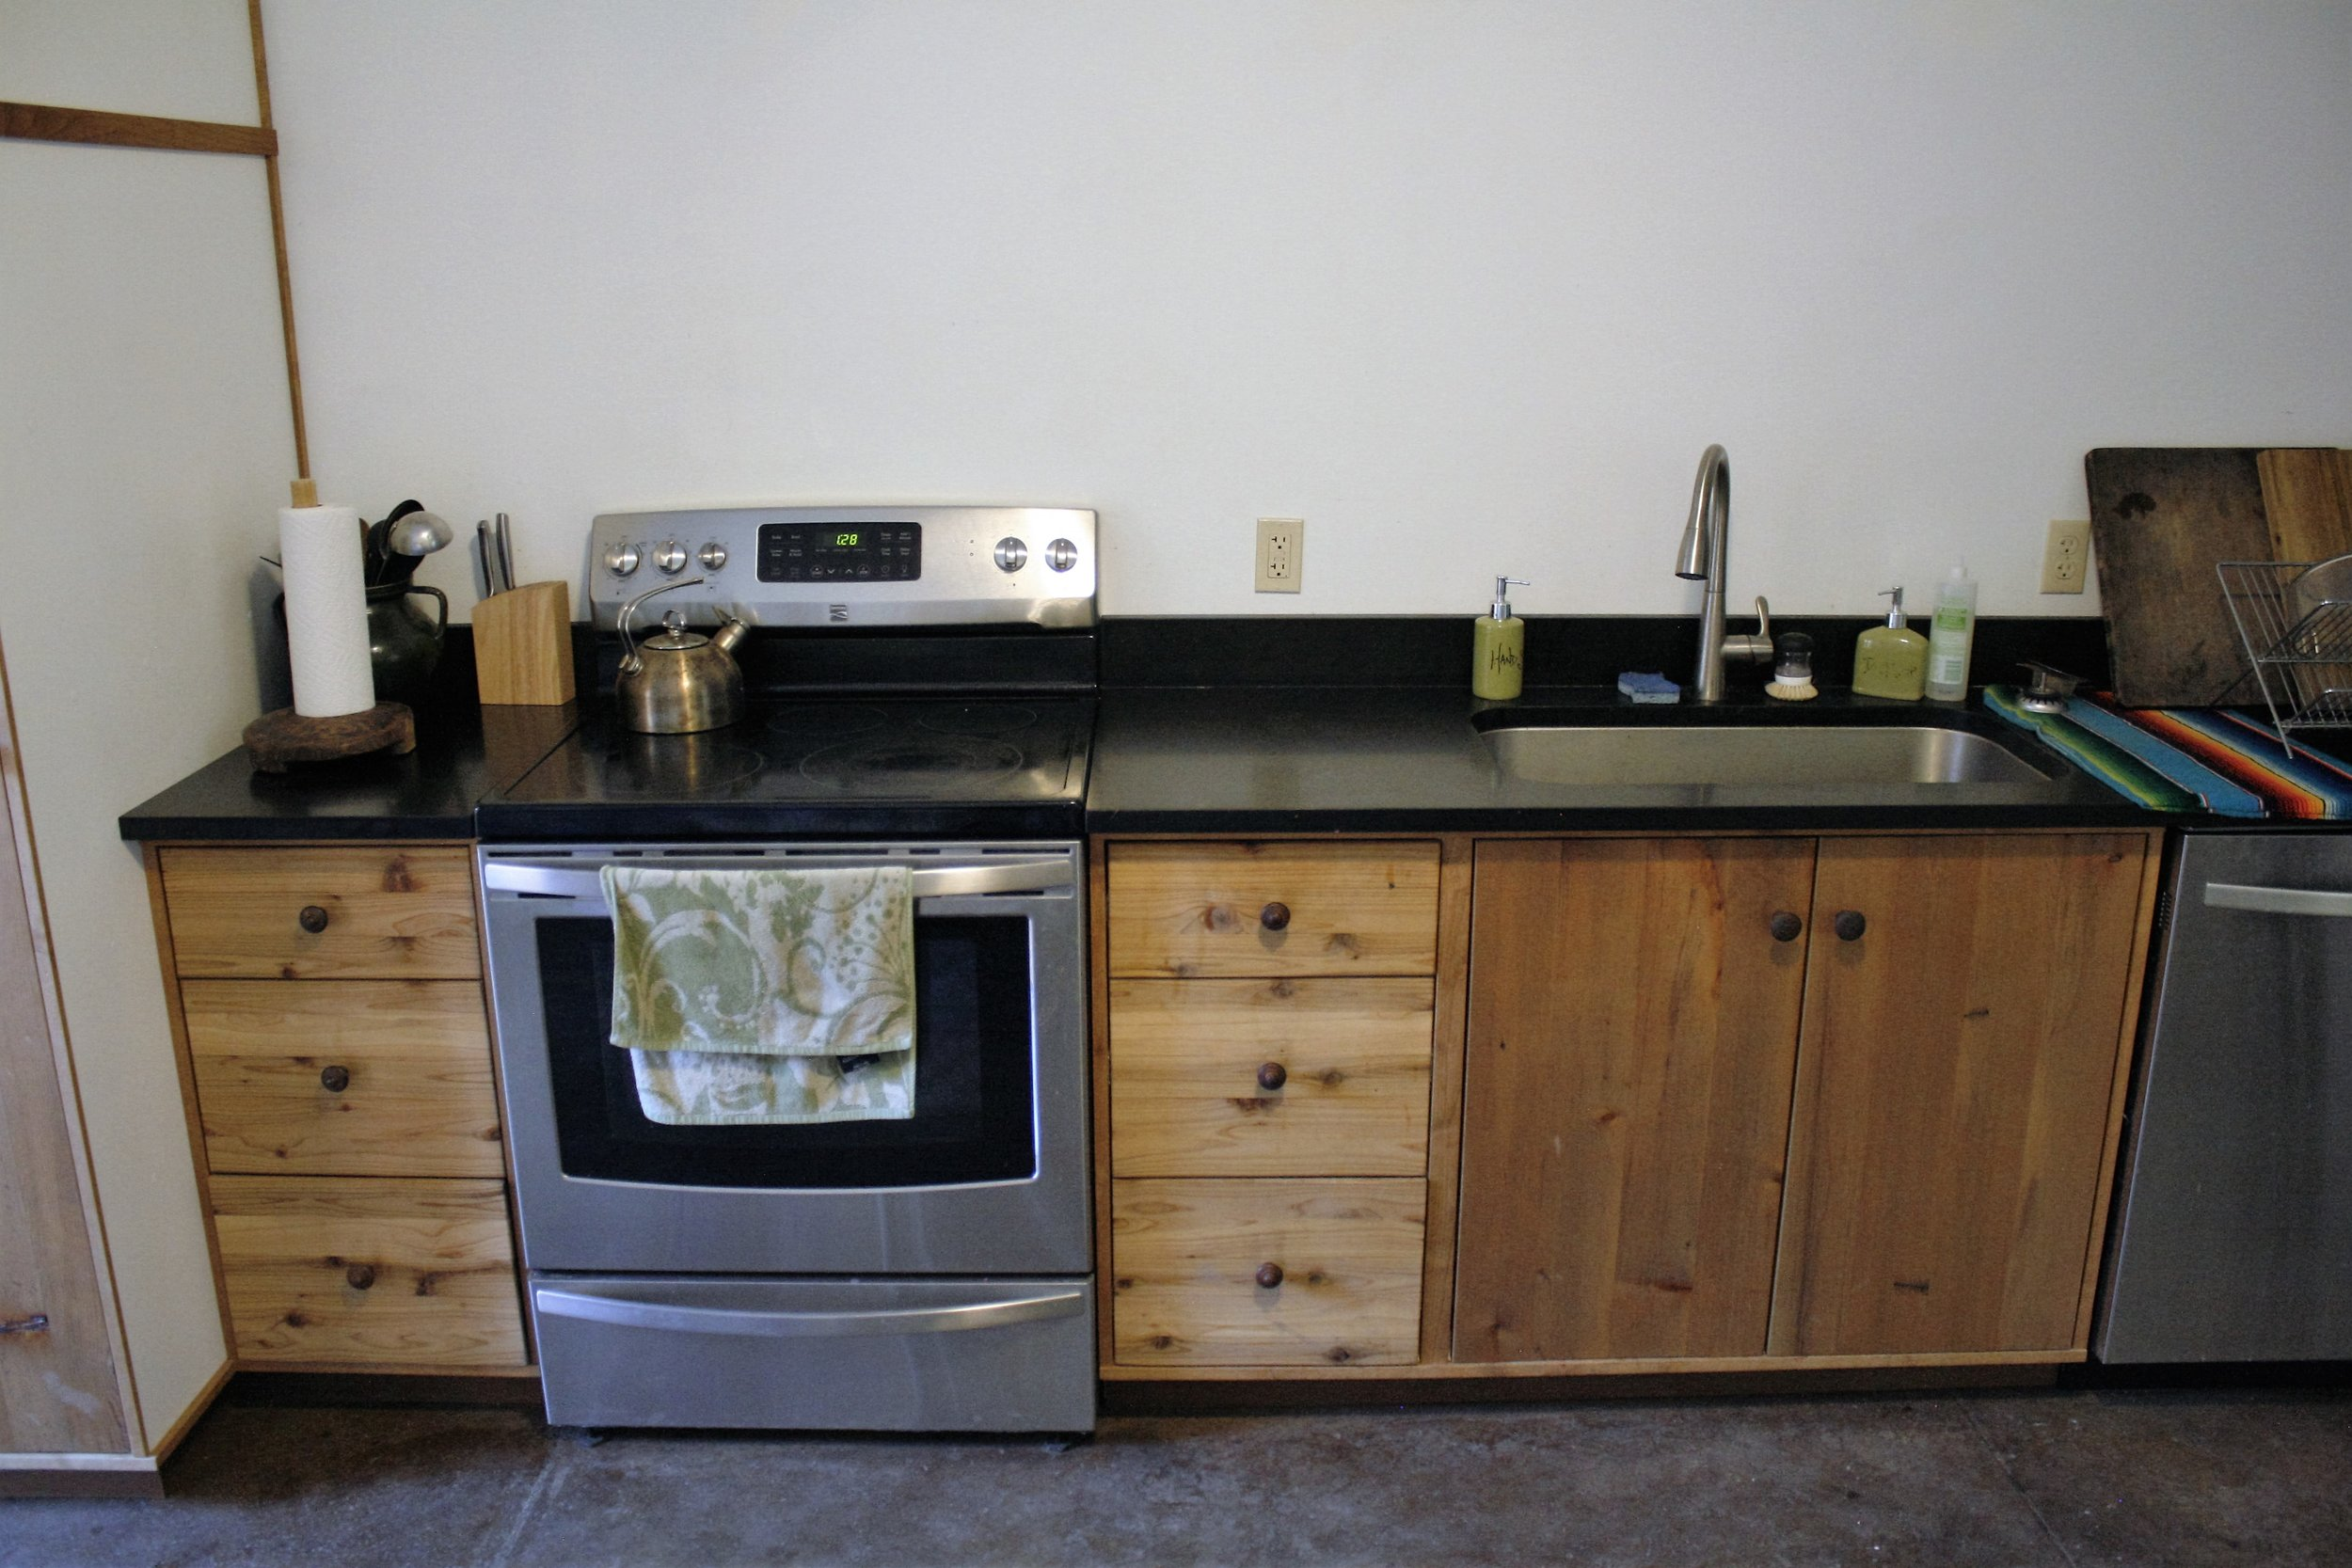 Custom cabinetry and appliance install